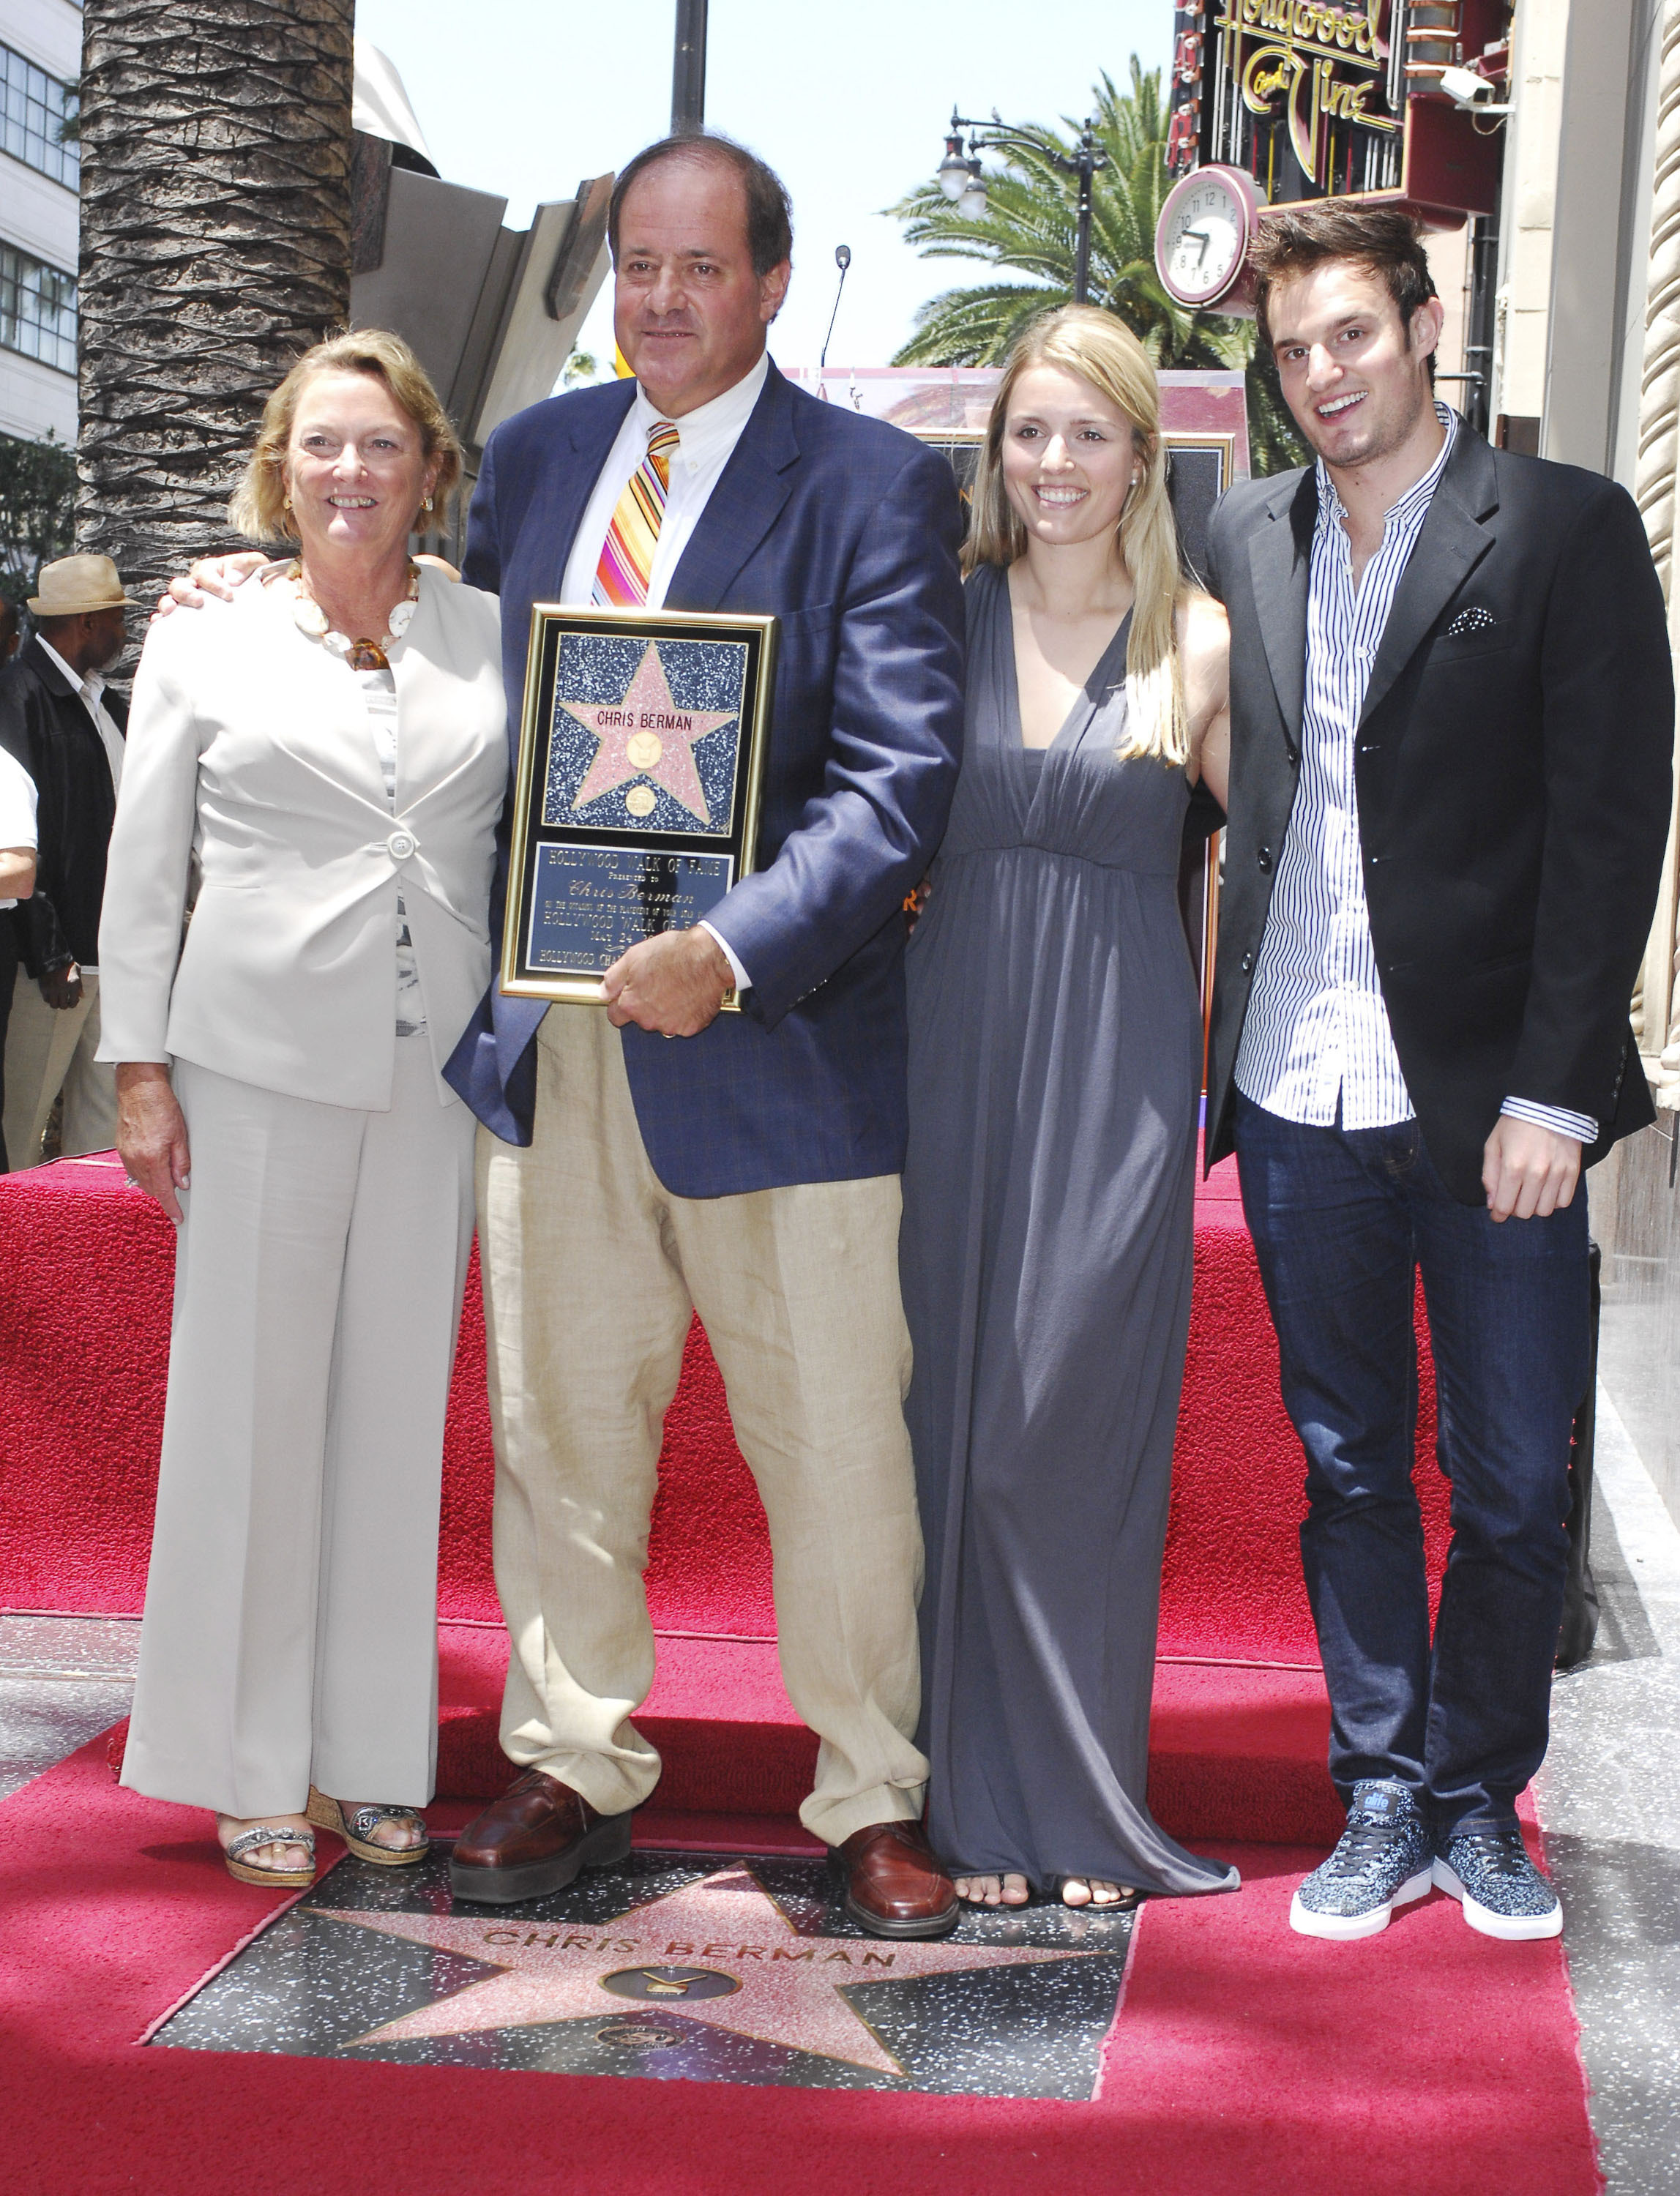 ESPN's Chris Berman, surrounded by his family, is honored with a star on the Hollywood Walk of Fame held in front of Dillon's on Hollywood Boulevard. (WENN)